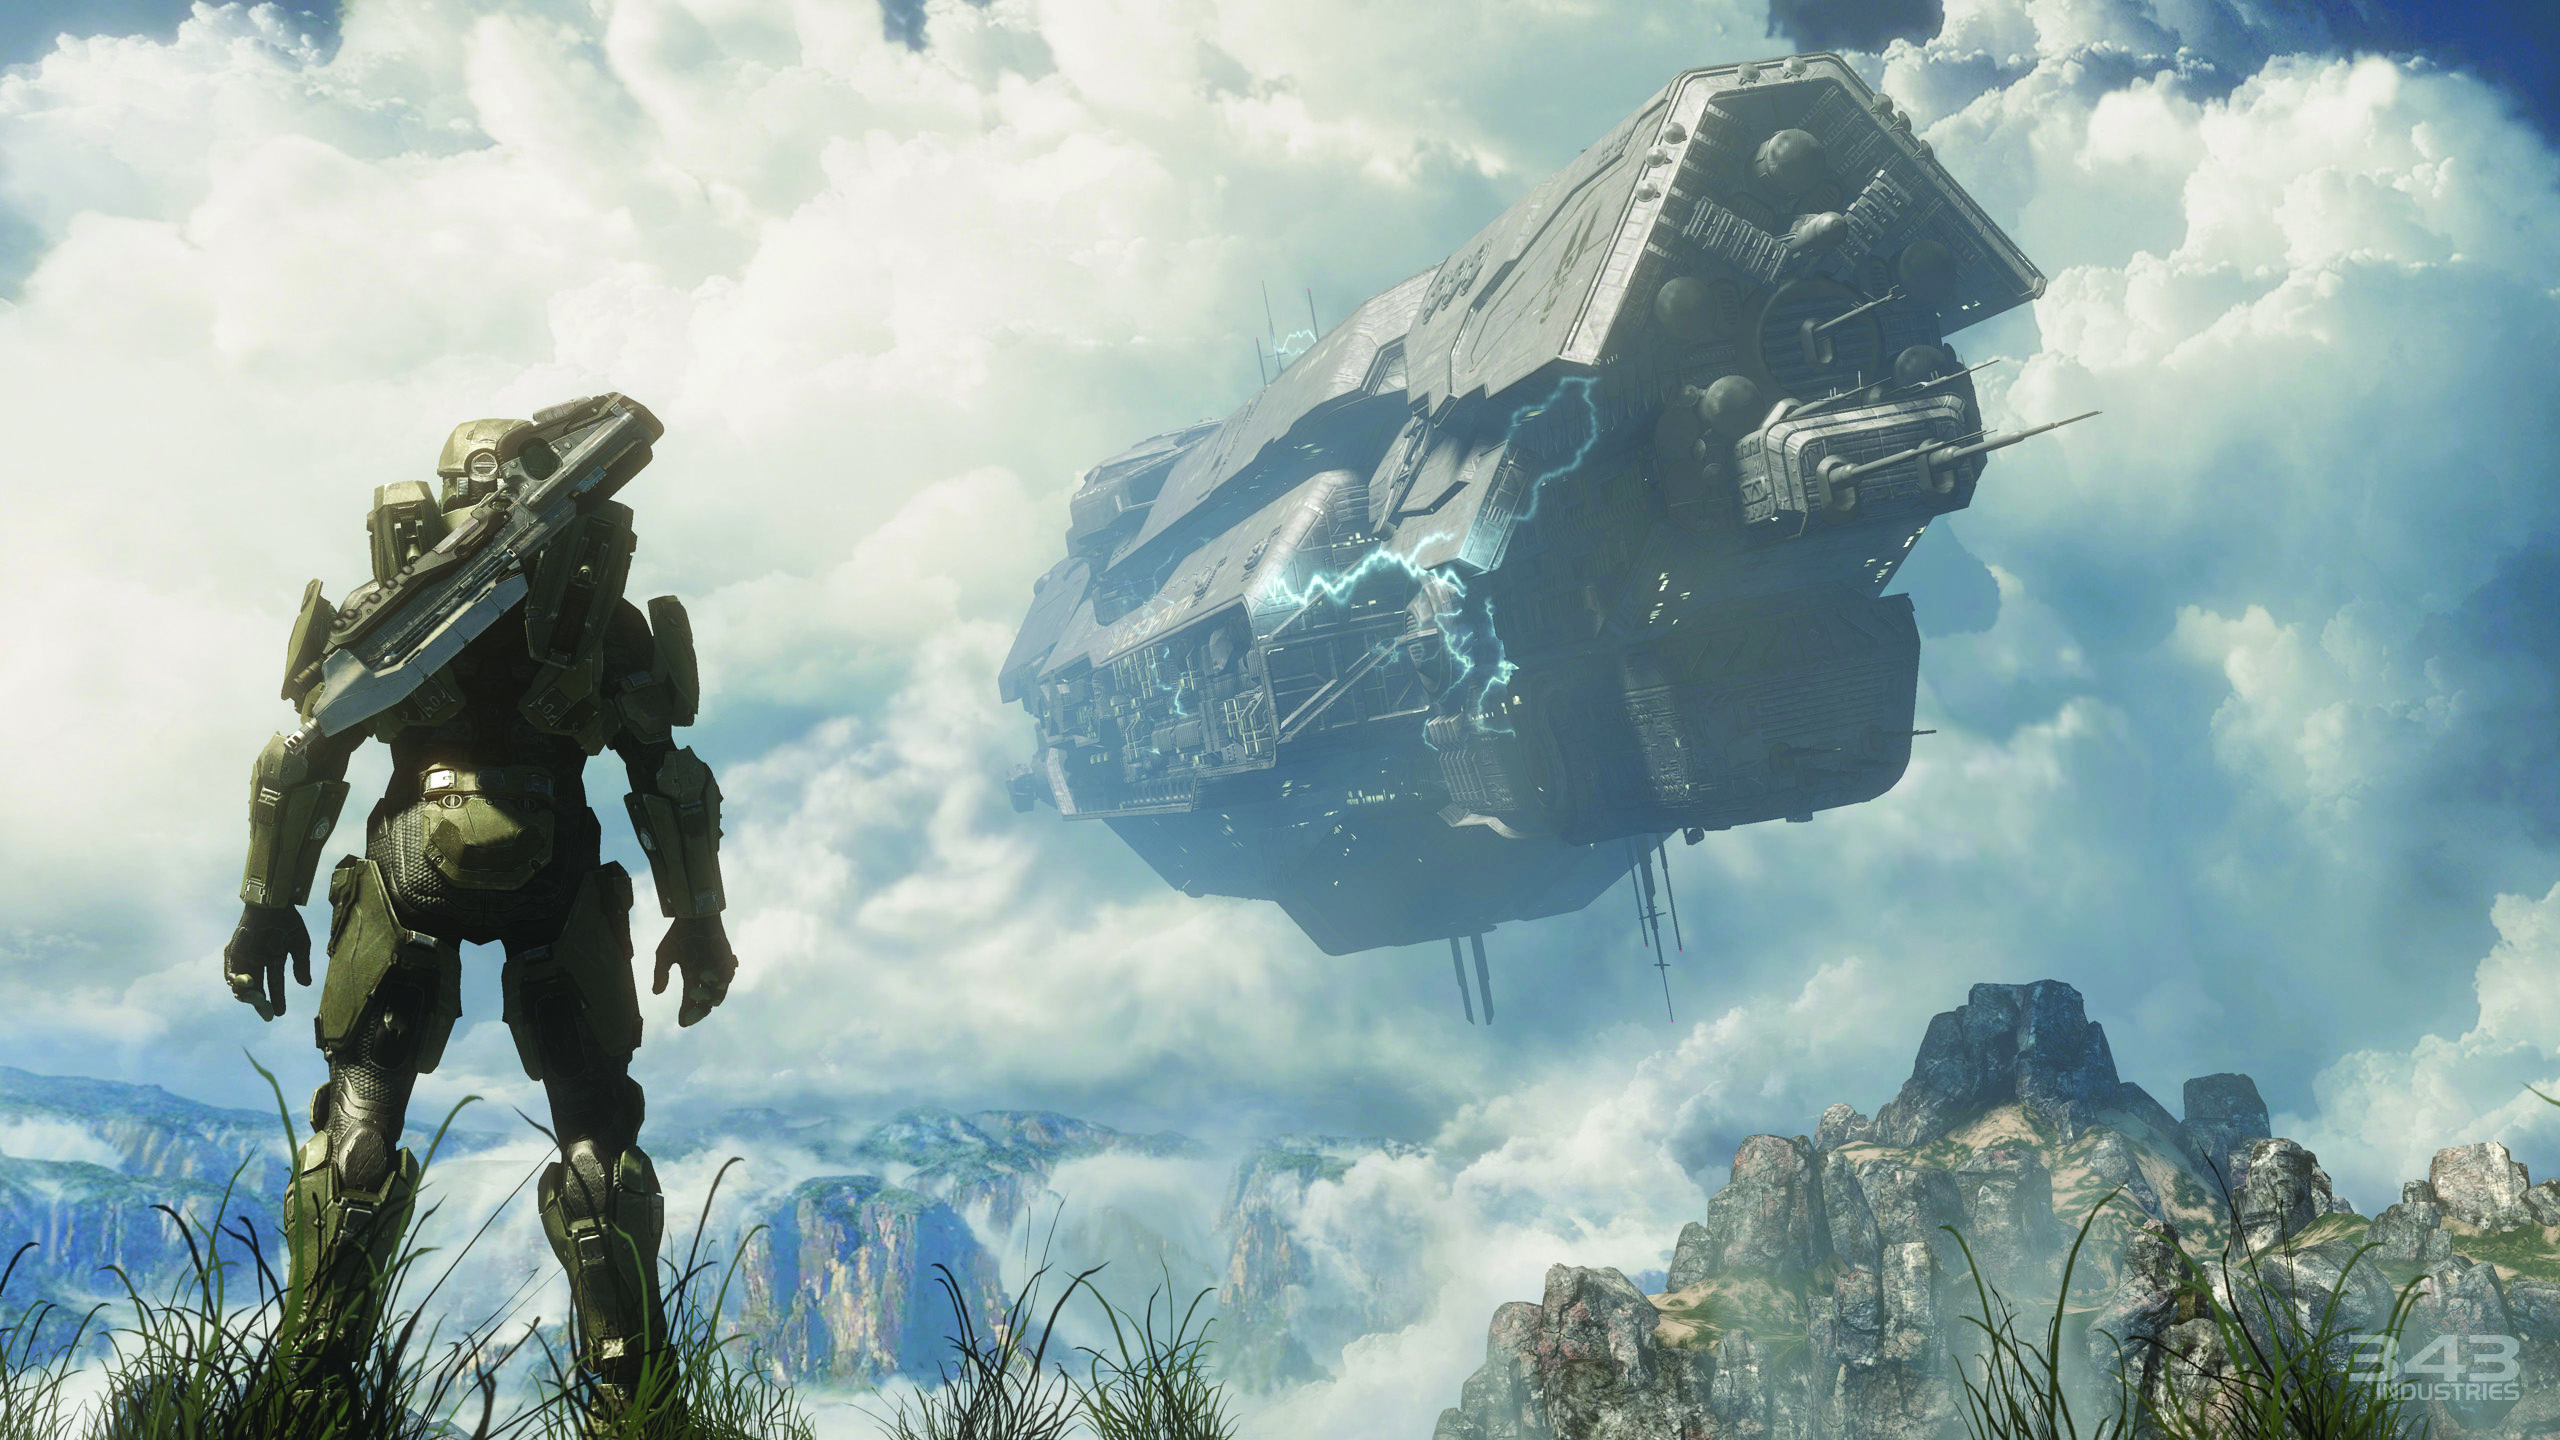 Halo Live Action TV Show Announced